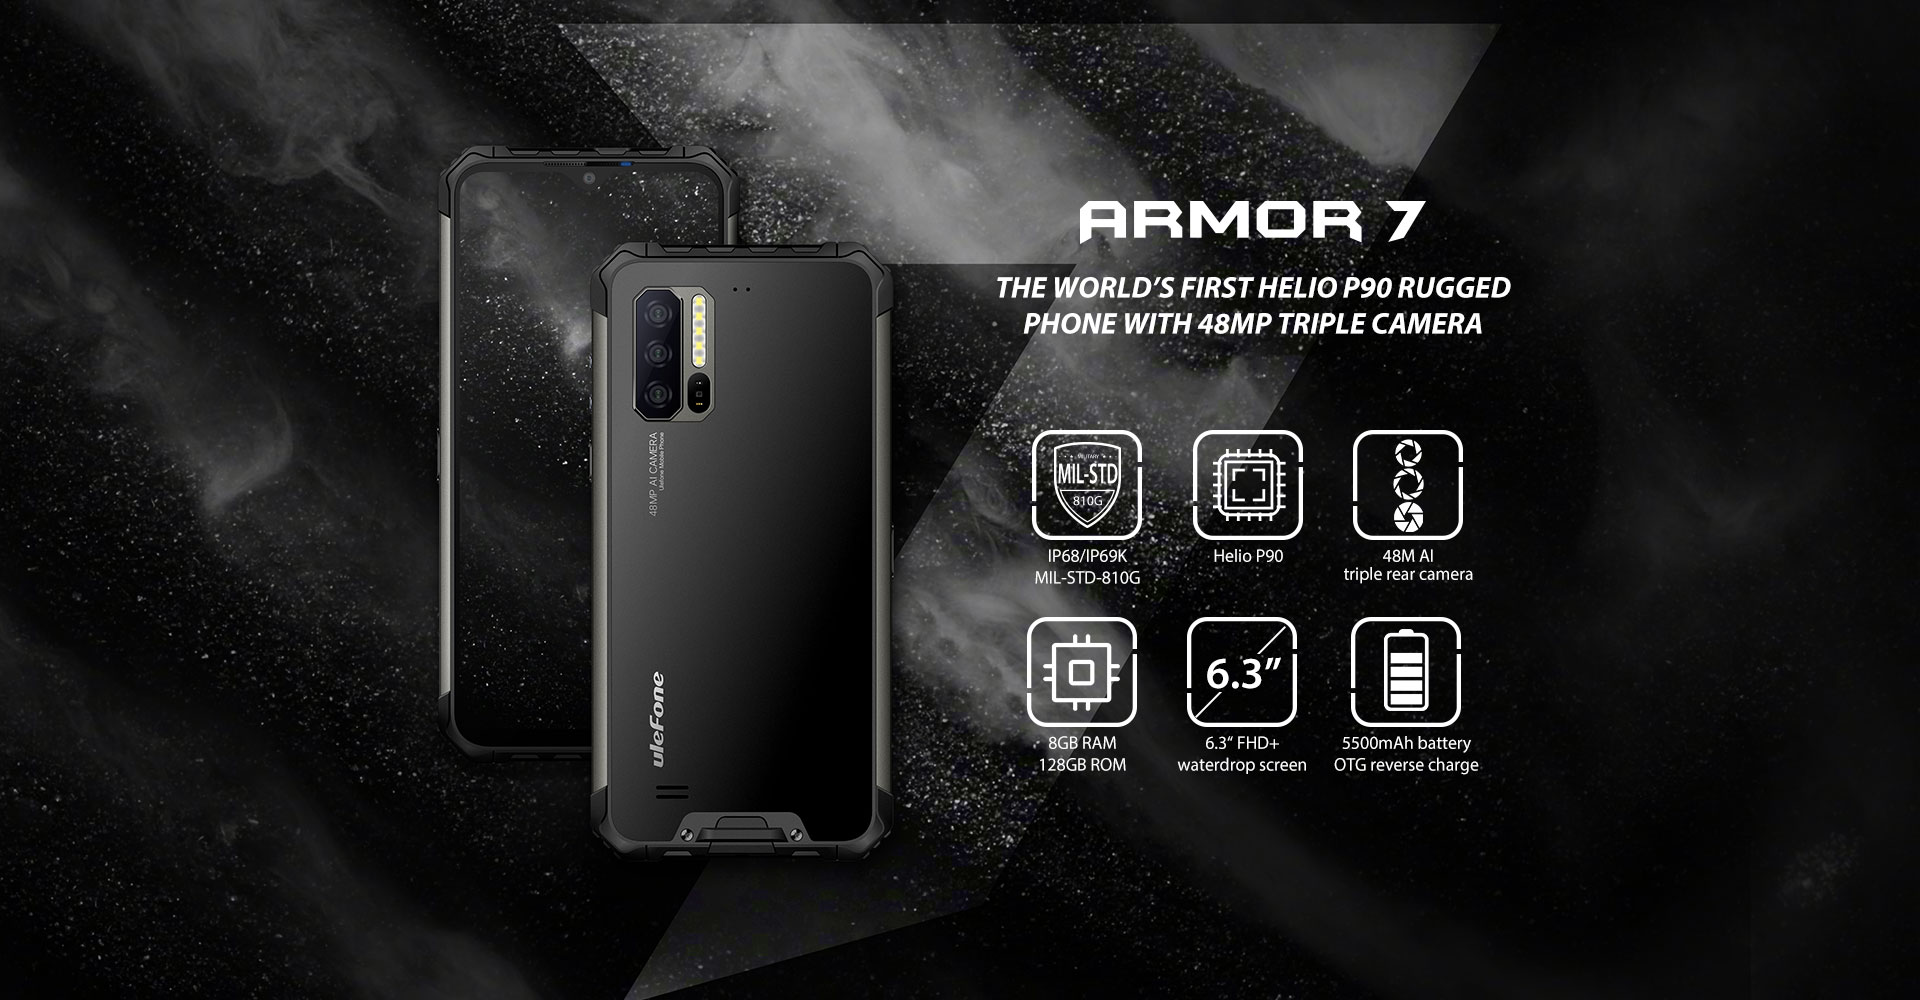 armor7-features-en-1.jpg